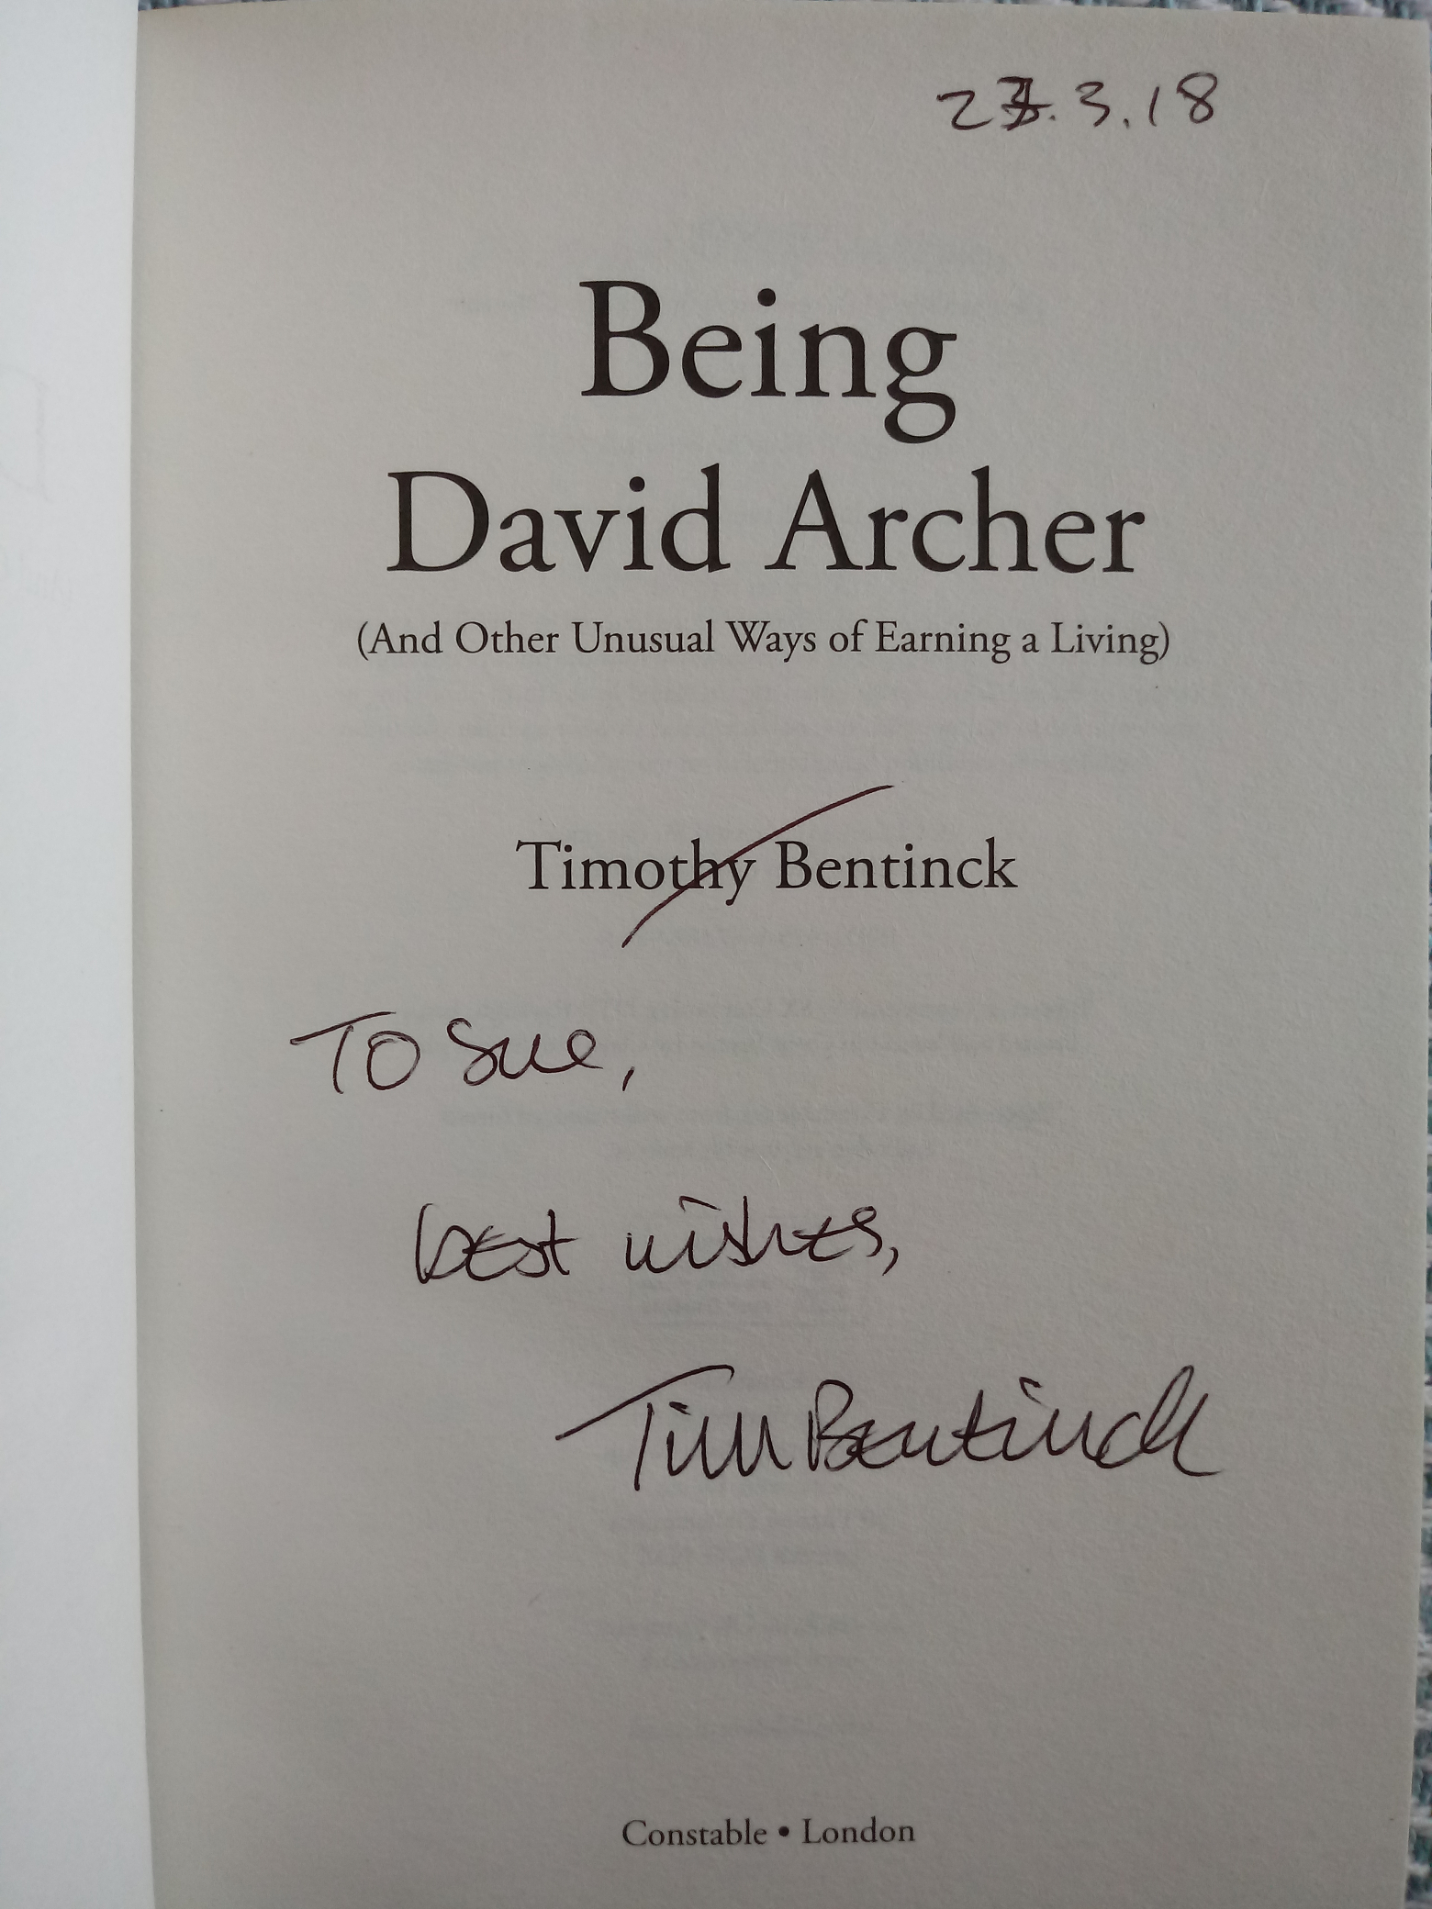 Being David Archer And Other Unusual Ways of Earning a Living by Timothy Bentinck hardback book - Image 2 of 3